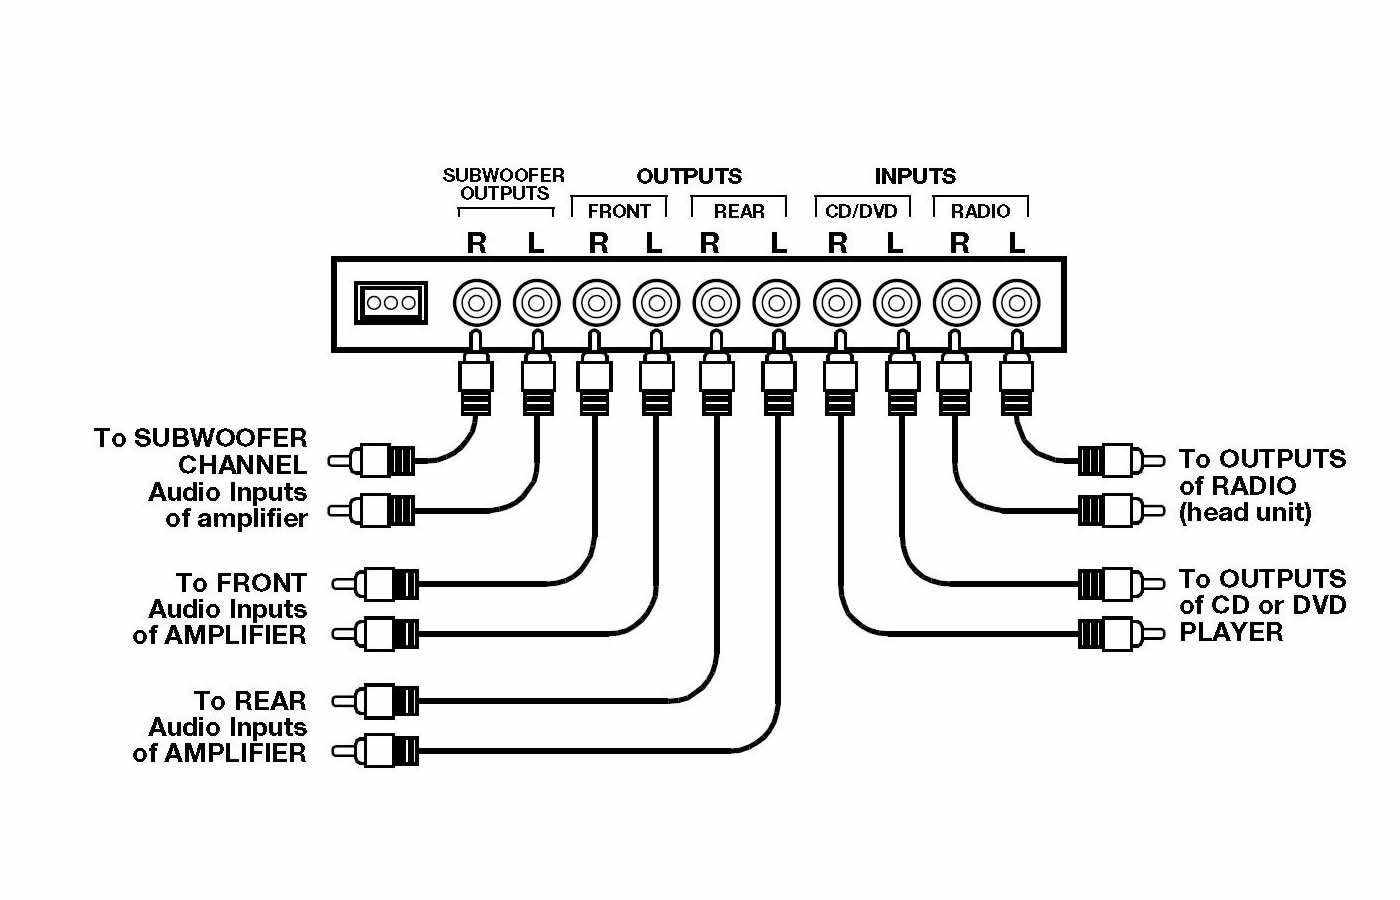 Wiring Diagram Kenwood Equalizer : Kenwood equalizer wiring diagram imageresizertool